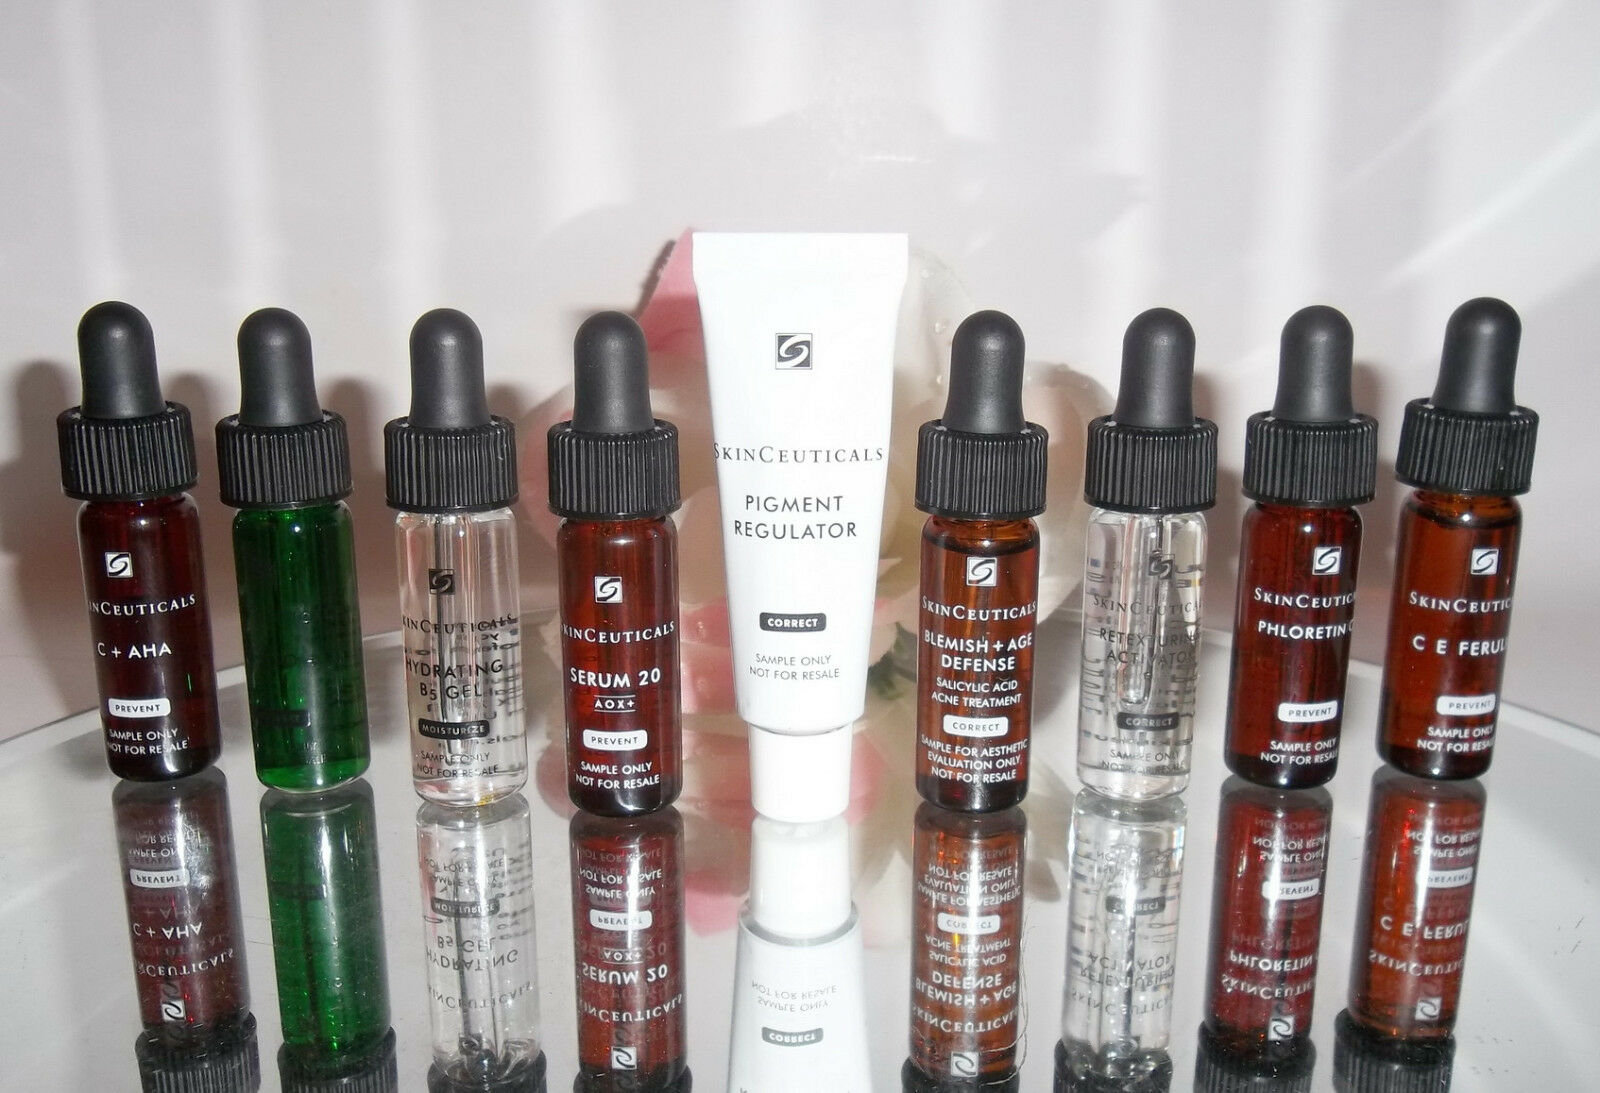 Skinceuticals Various Travel Samples Your Choice Of 1 Sample 4-5ml